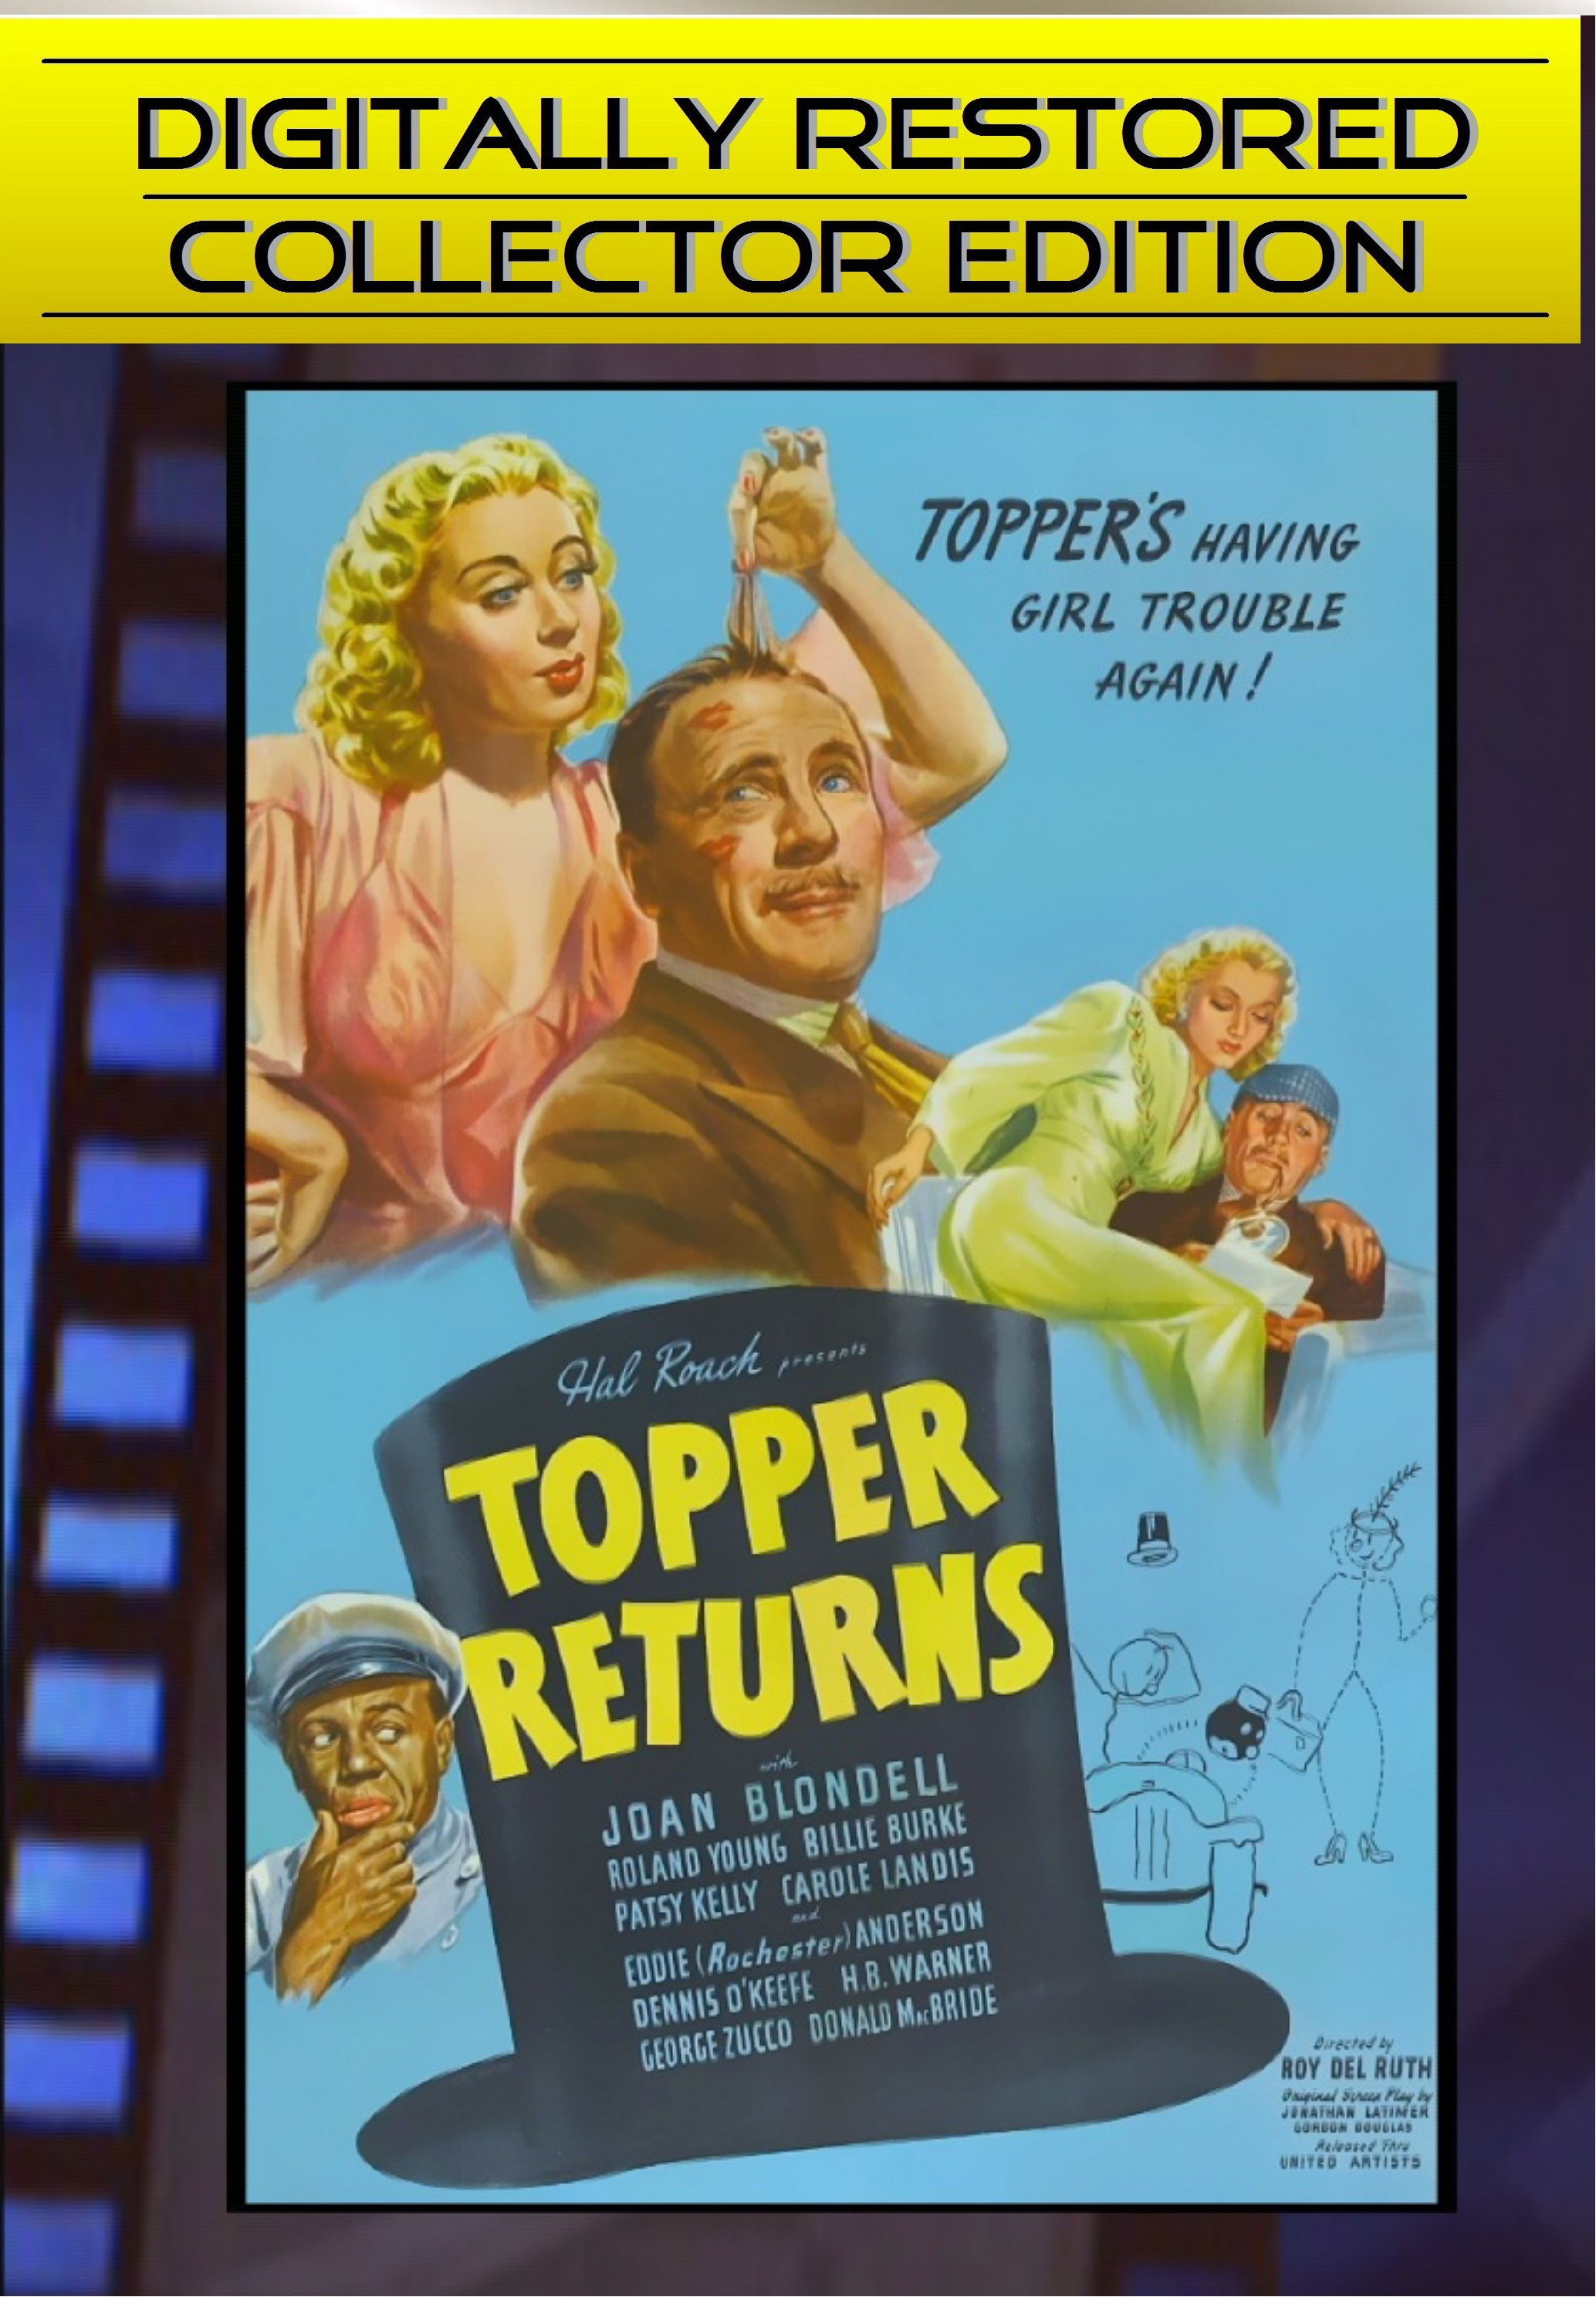 Topper Returns ~ DIGITALLY RESTORED ~ Joan Blondell, Roland Youn